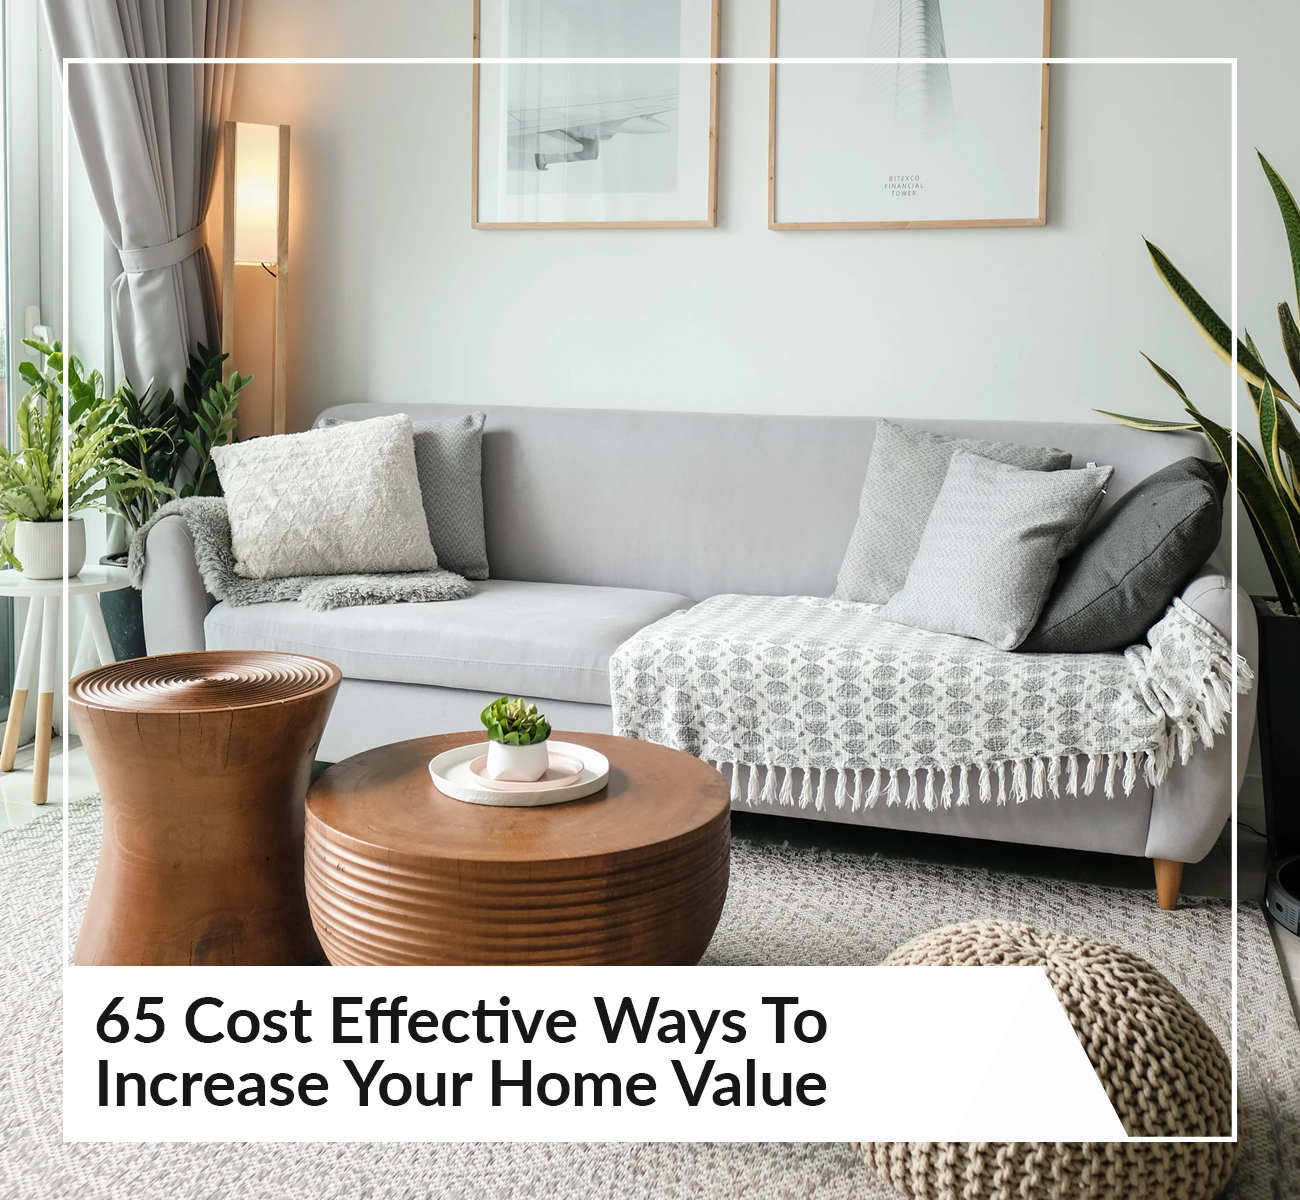 Cost Effective Improvements To Increase Home Value